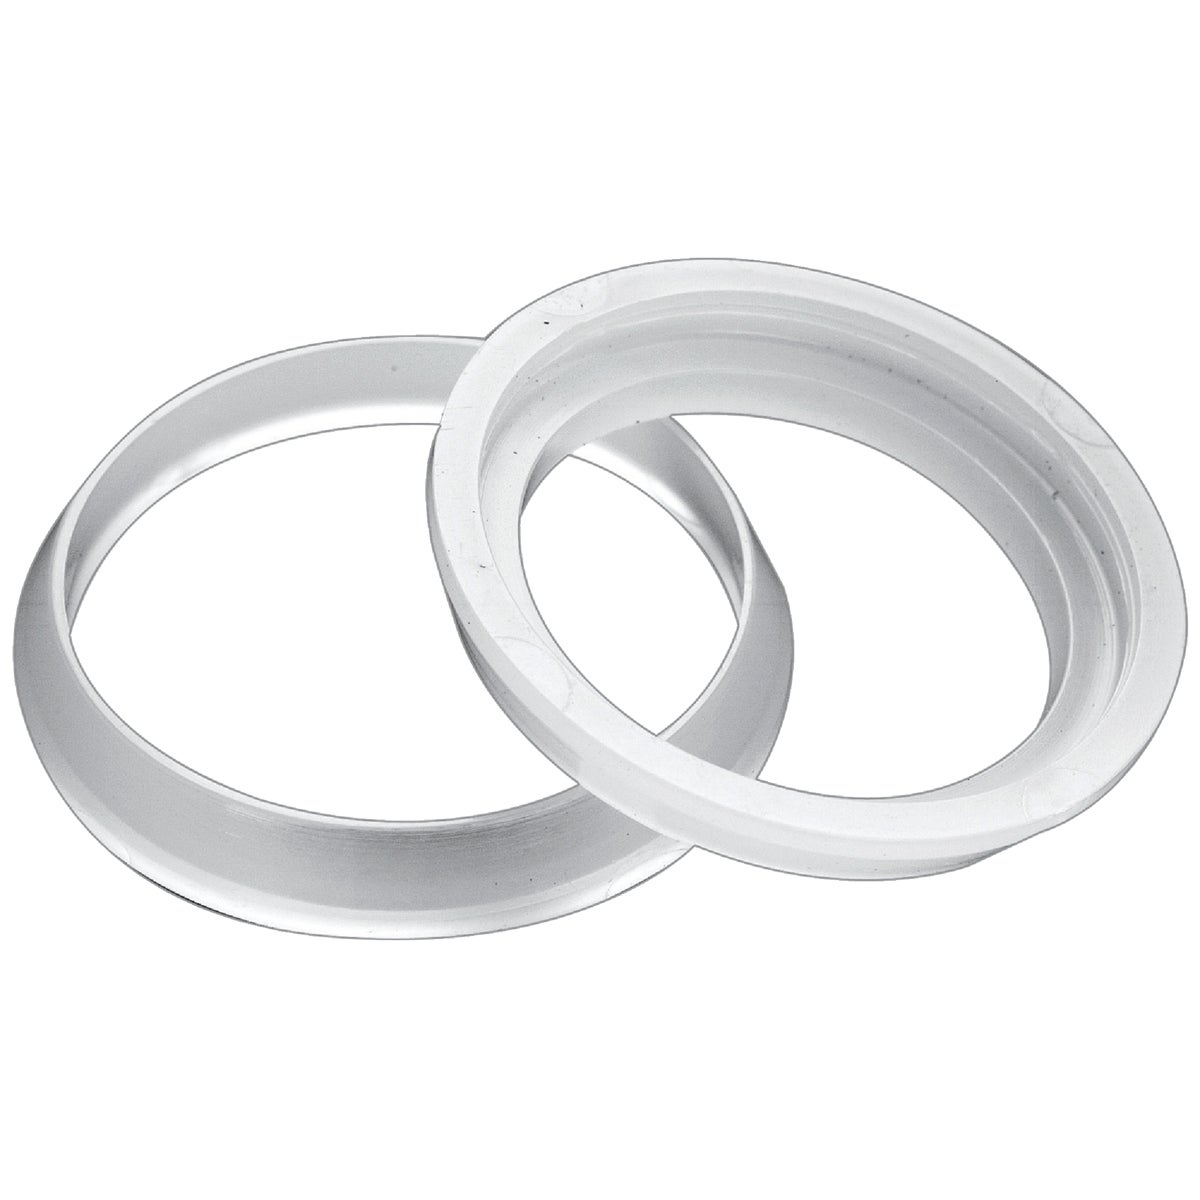 2PK 1-1/4 S/J WASHERS - 405243 by Plumb Pak/keeney Mfg